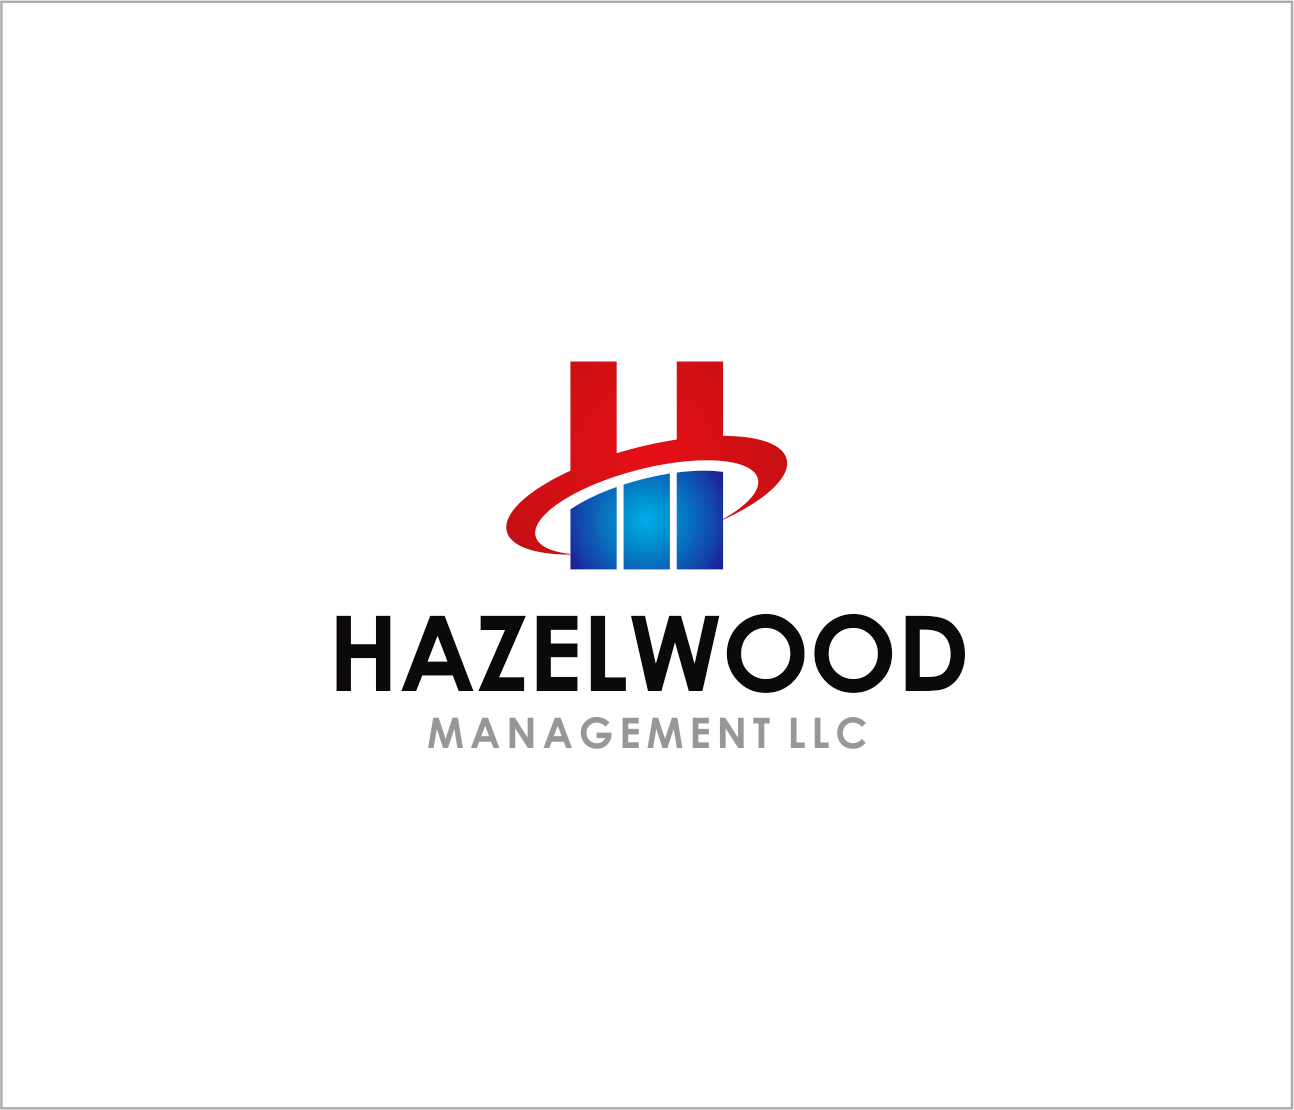 Logo Design by Armada Jamaluddin - Entry No. 64 in the Logo Design Contest Hazelwood Management LLC Logo Design.